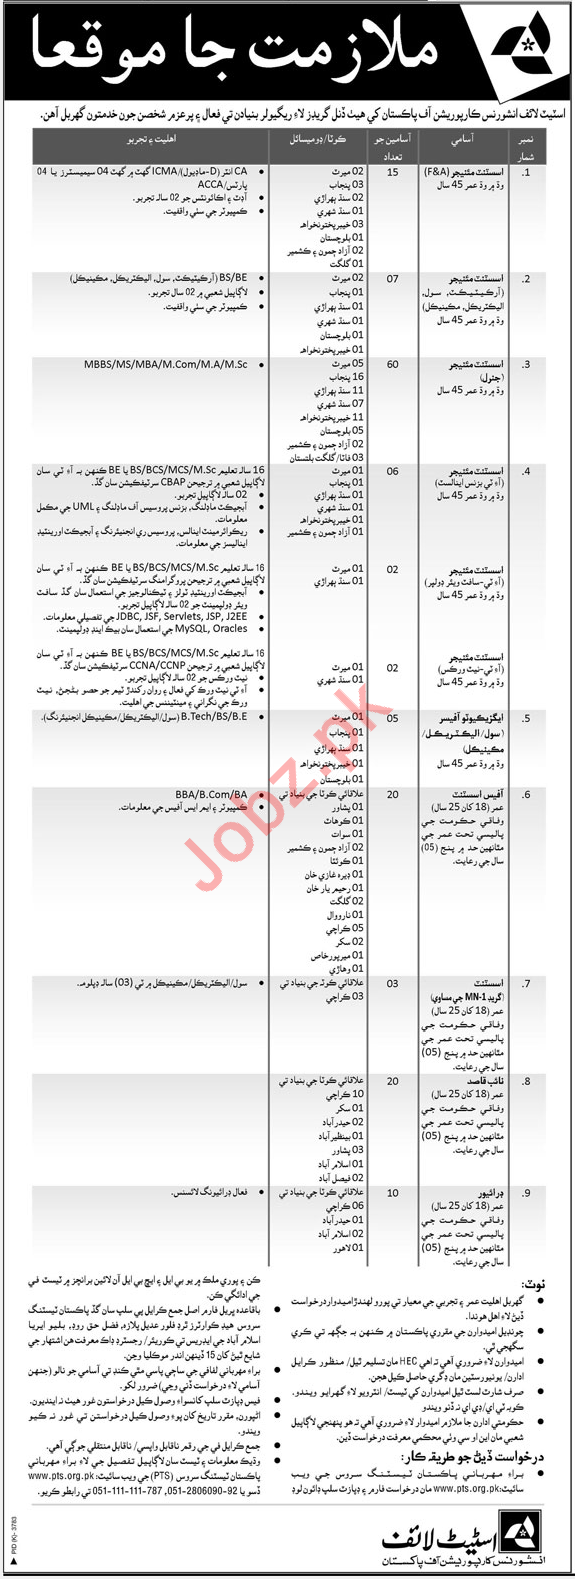 State Life Insurance Corporation of Pakistan Jobs Via PTS